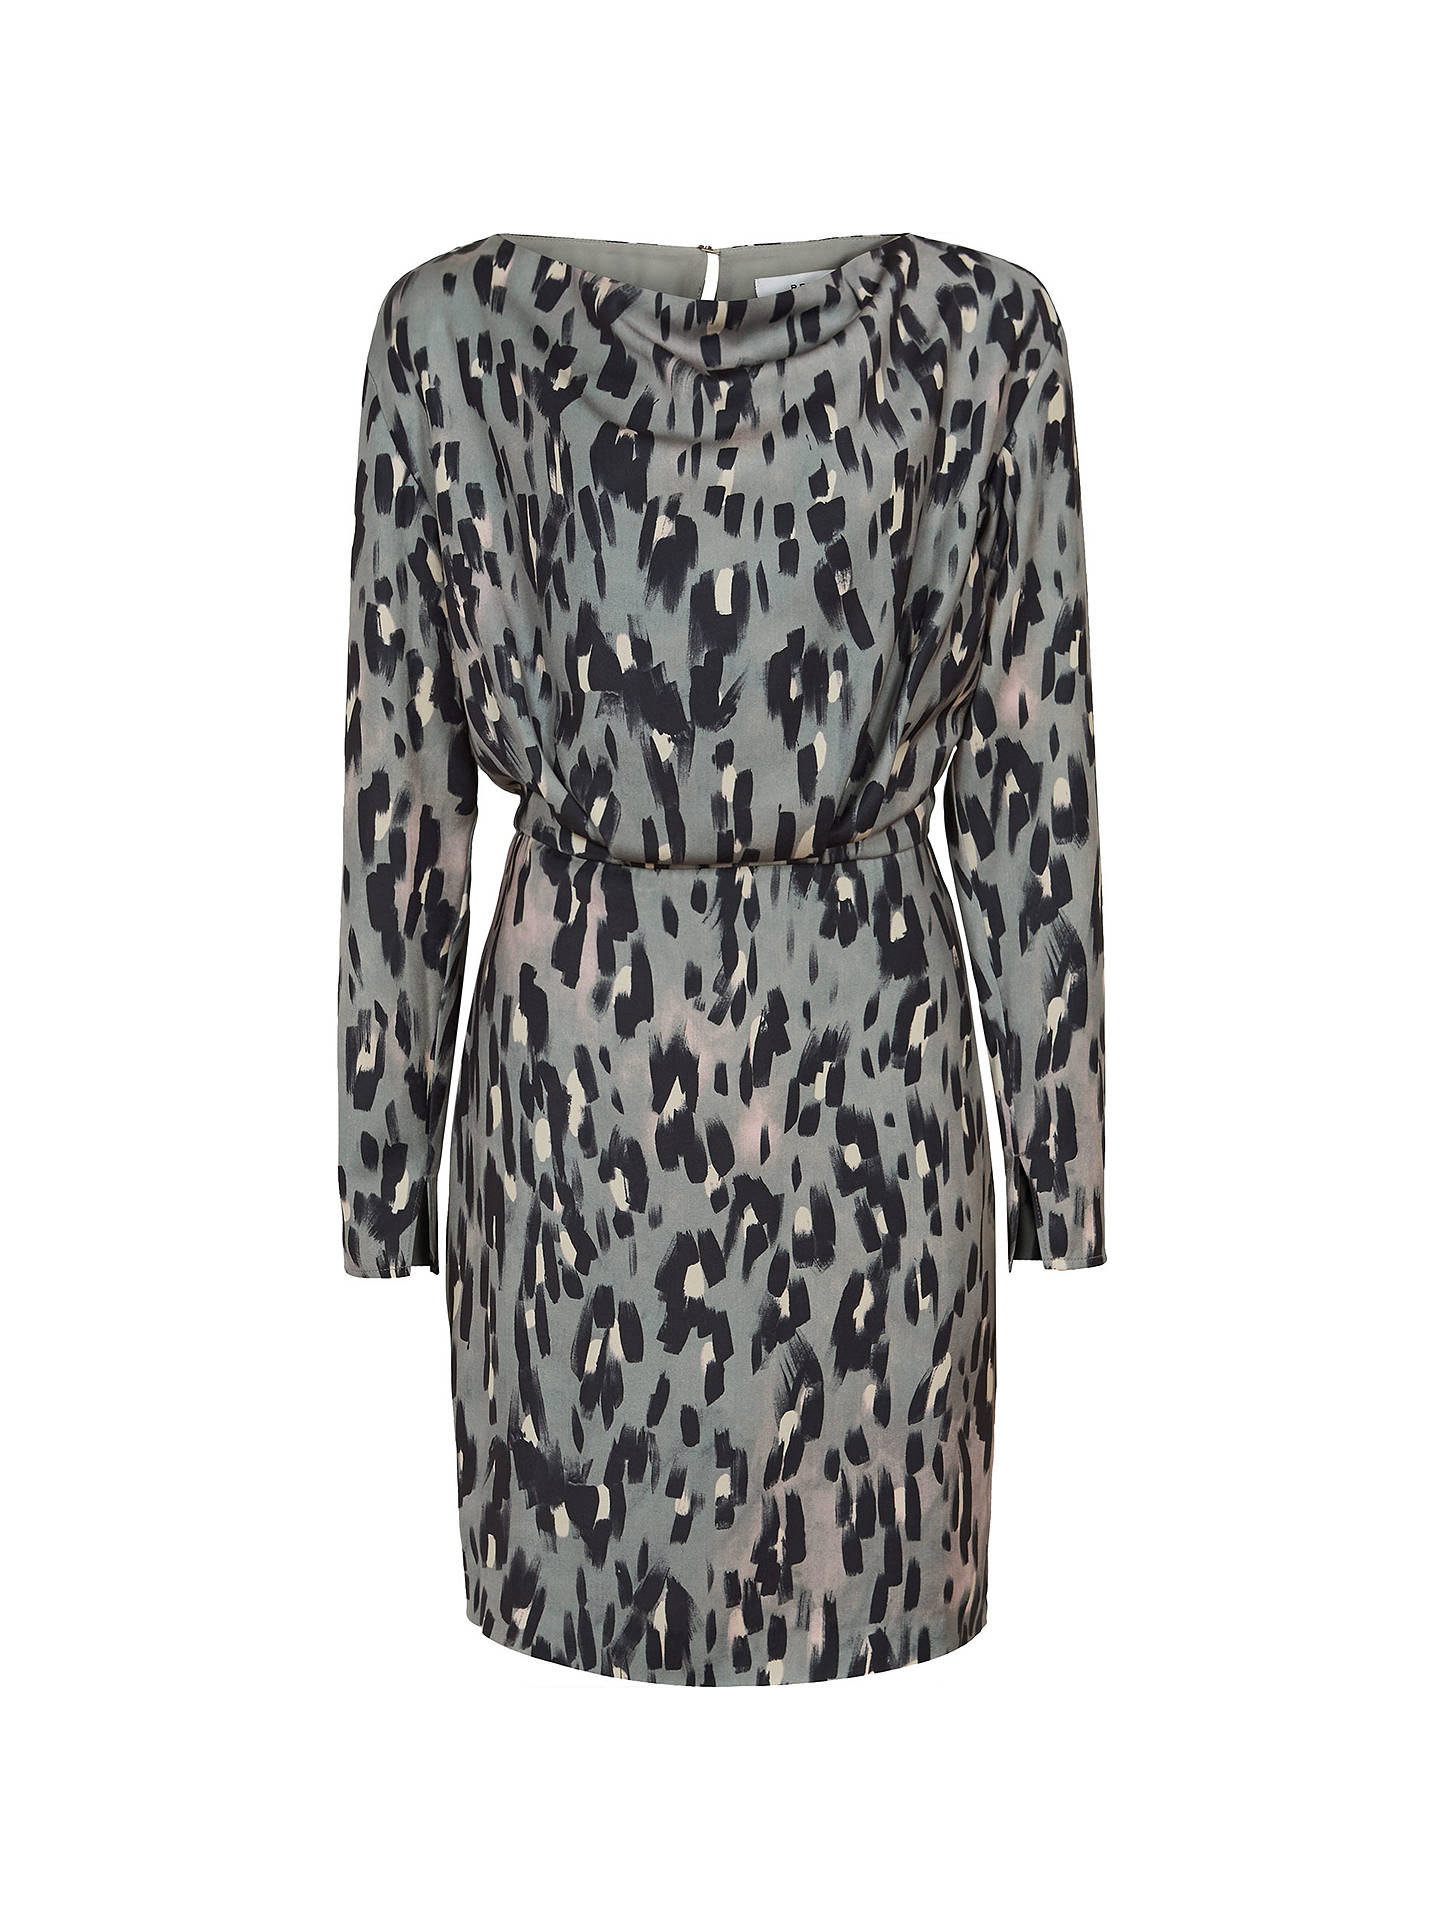 07ed38bf1d45 ... Buy Reiss Lotta Print Long Sleeve Dress, Multi, 6 Online at  johnlewis.com